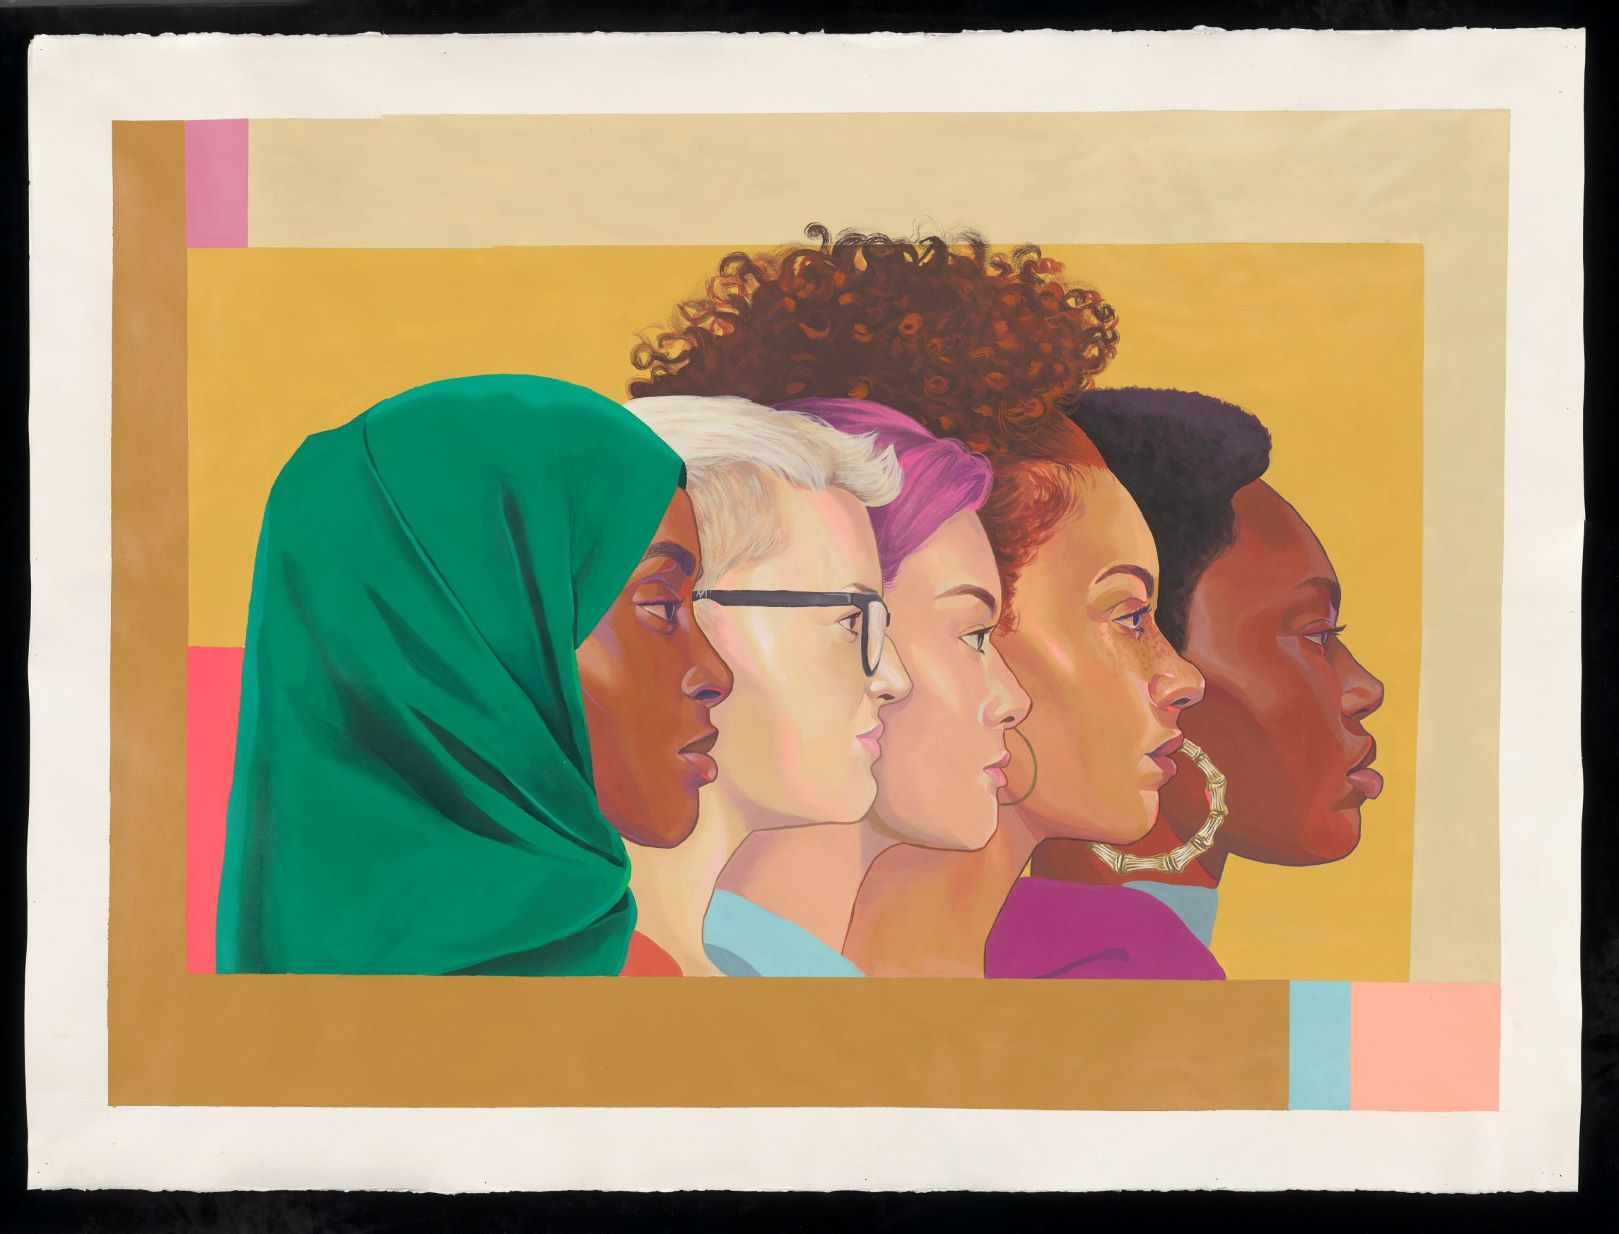 profile of four women looking to the right